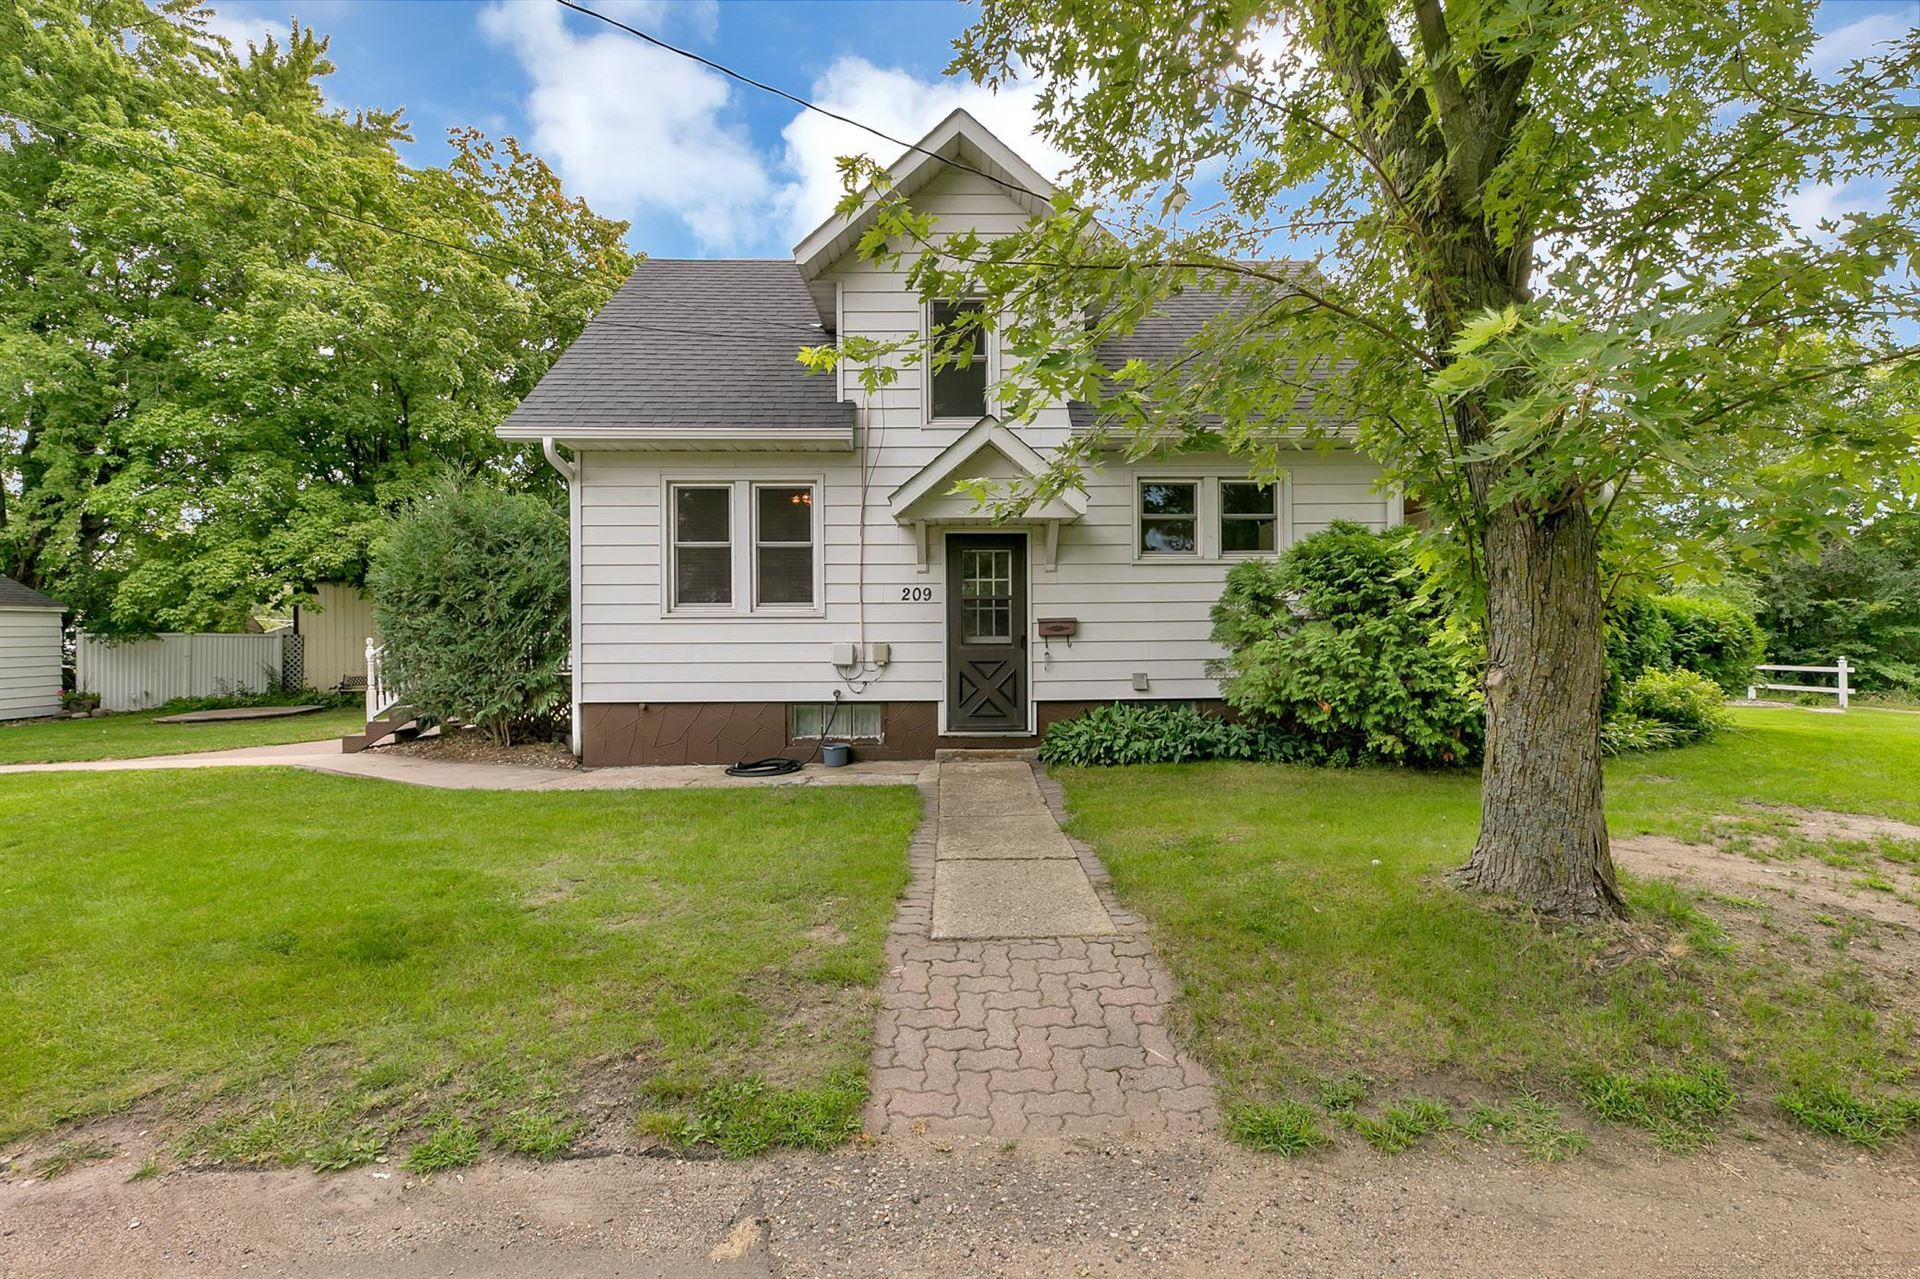 209 5th Street S, Cold Spring, MN 56320 - #: 5638941